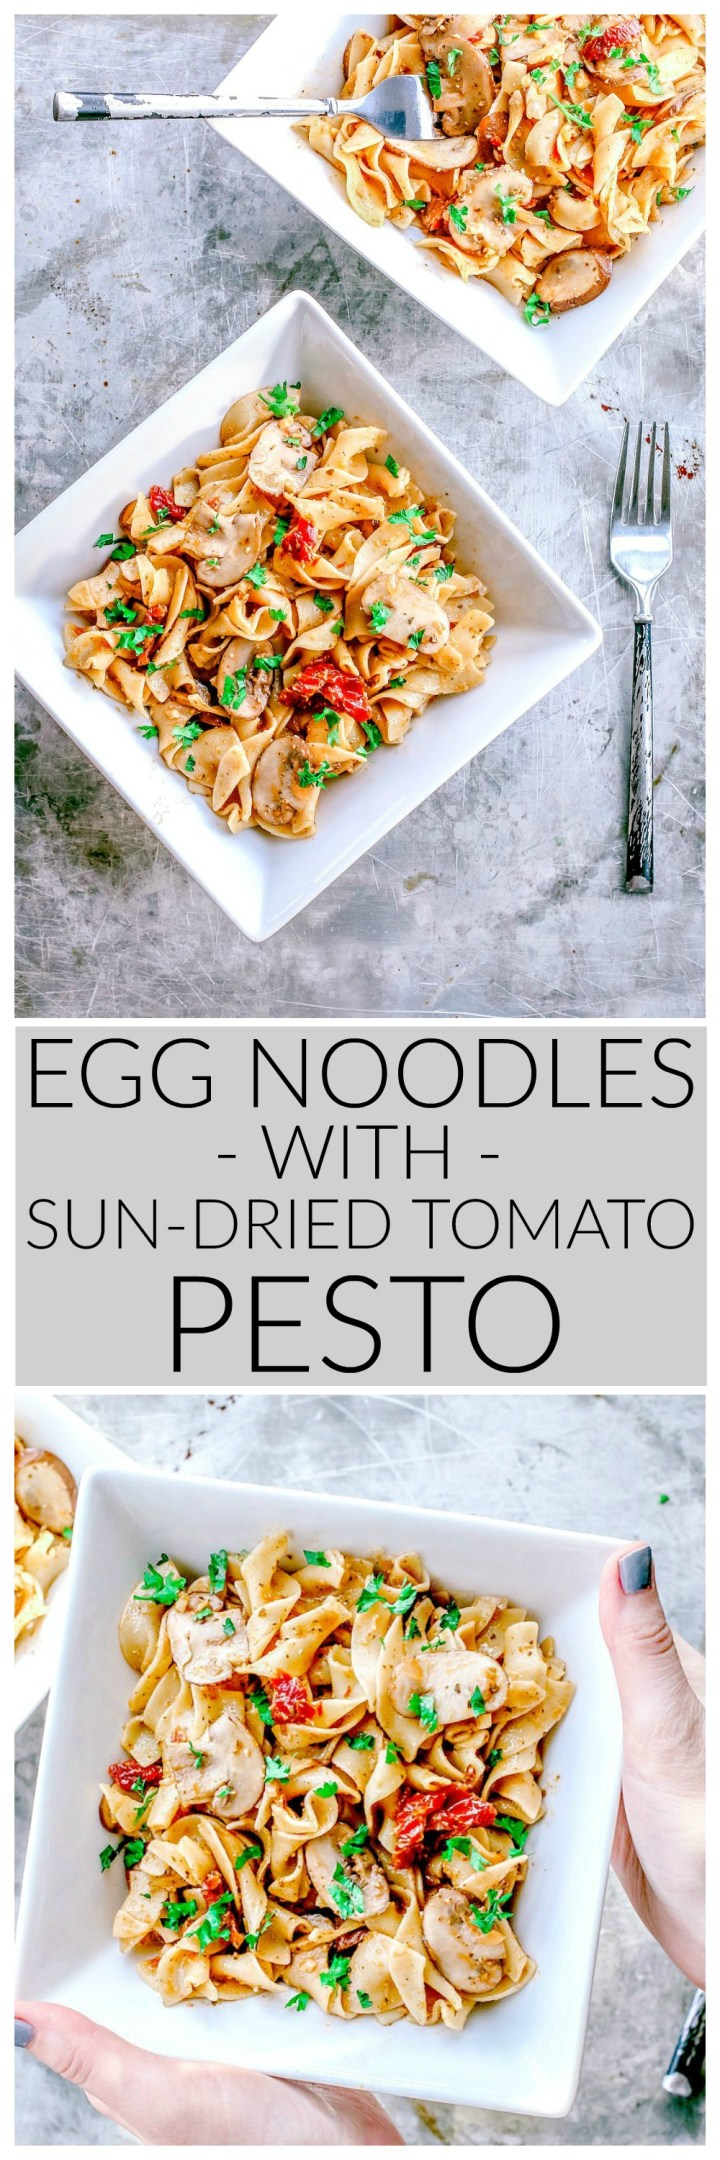 Egg Noodles With Sun-Dried Tomato Pesto and Mushrooms | Killing Thyme